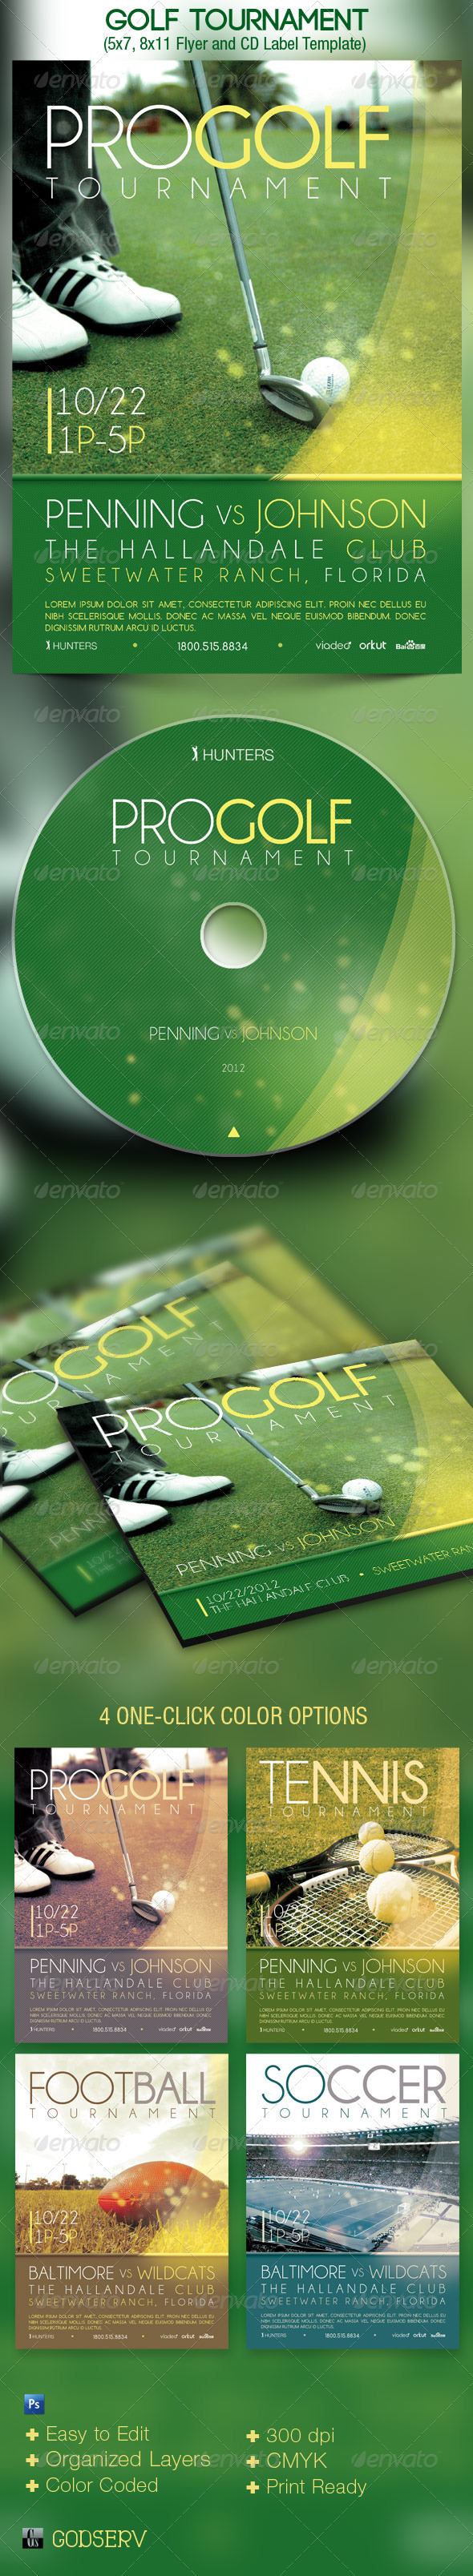 Golf Tournament Event Flyer and CD Template - Sports Events